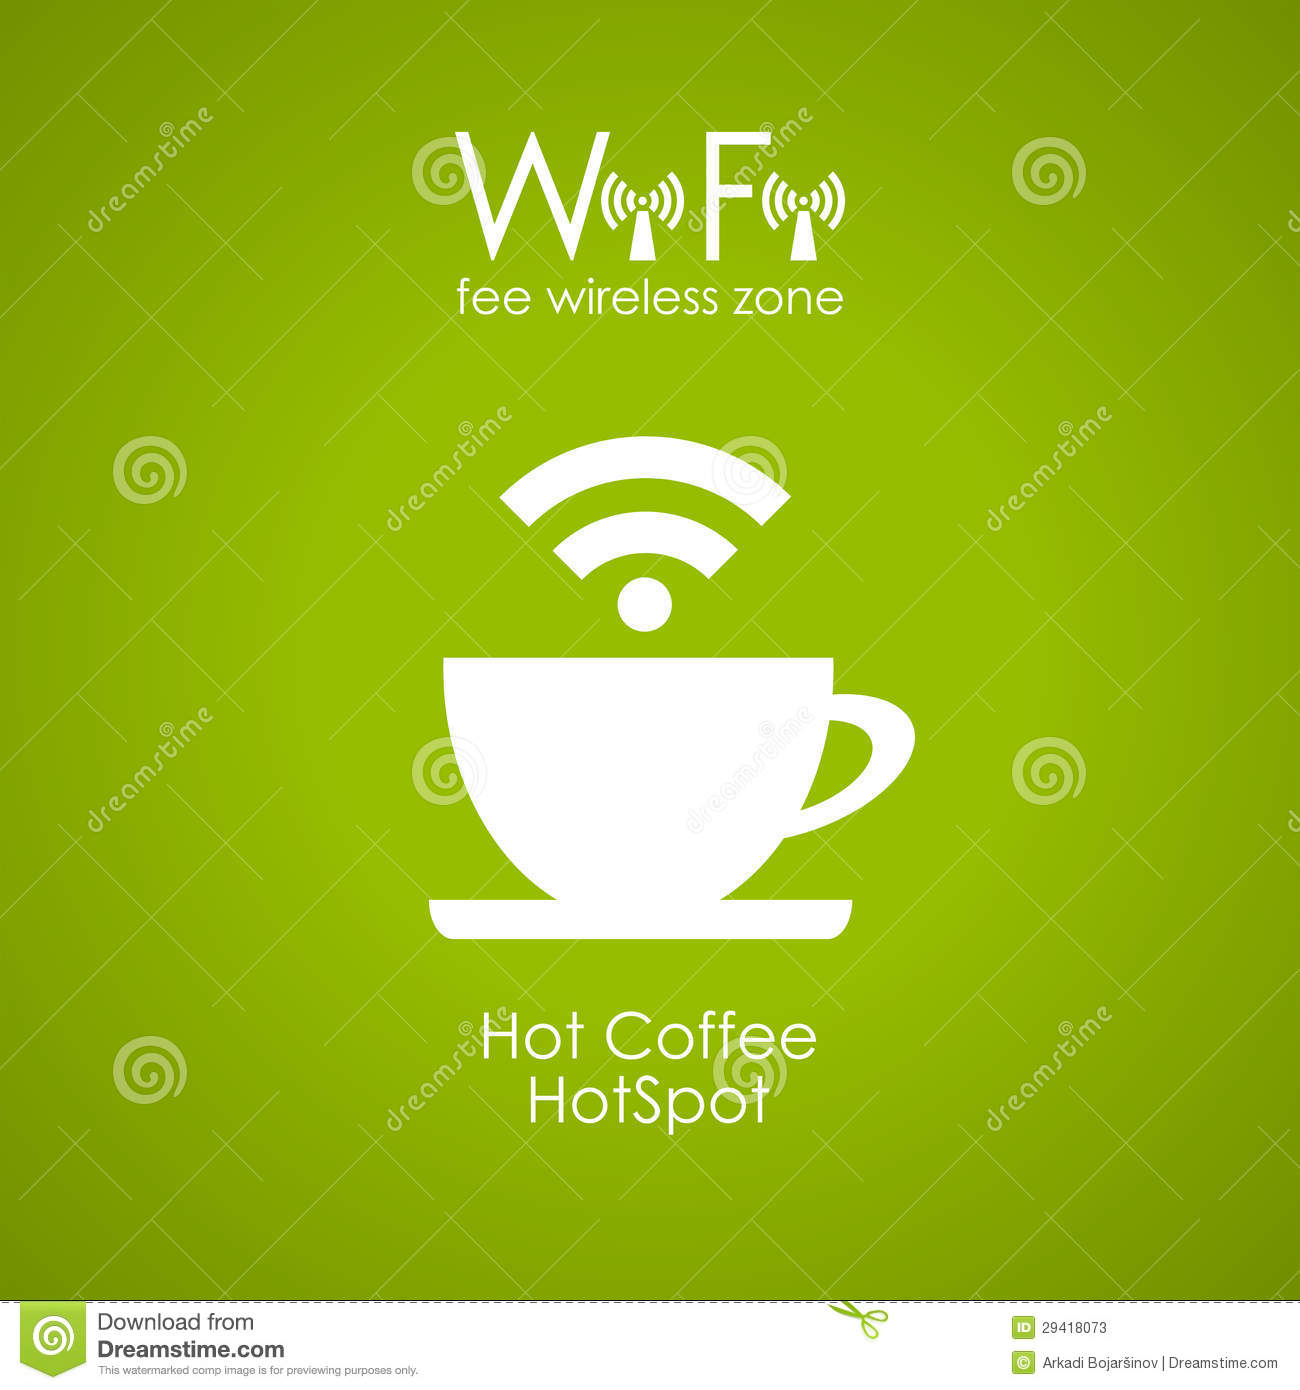 Stock Photos Inter  Cafe Poster Image29418073 on wire connection symbol